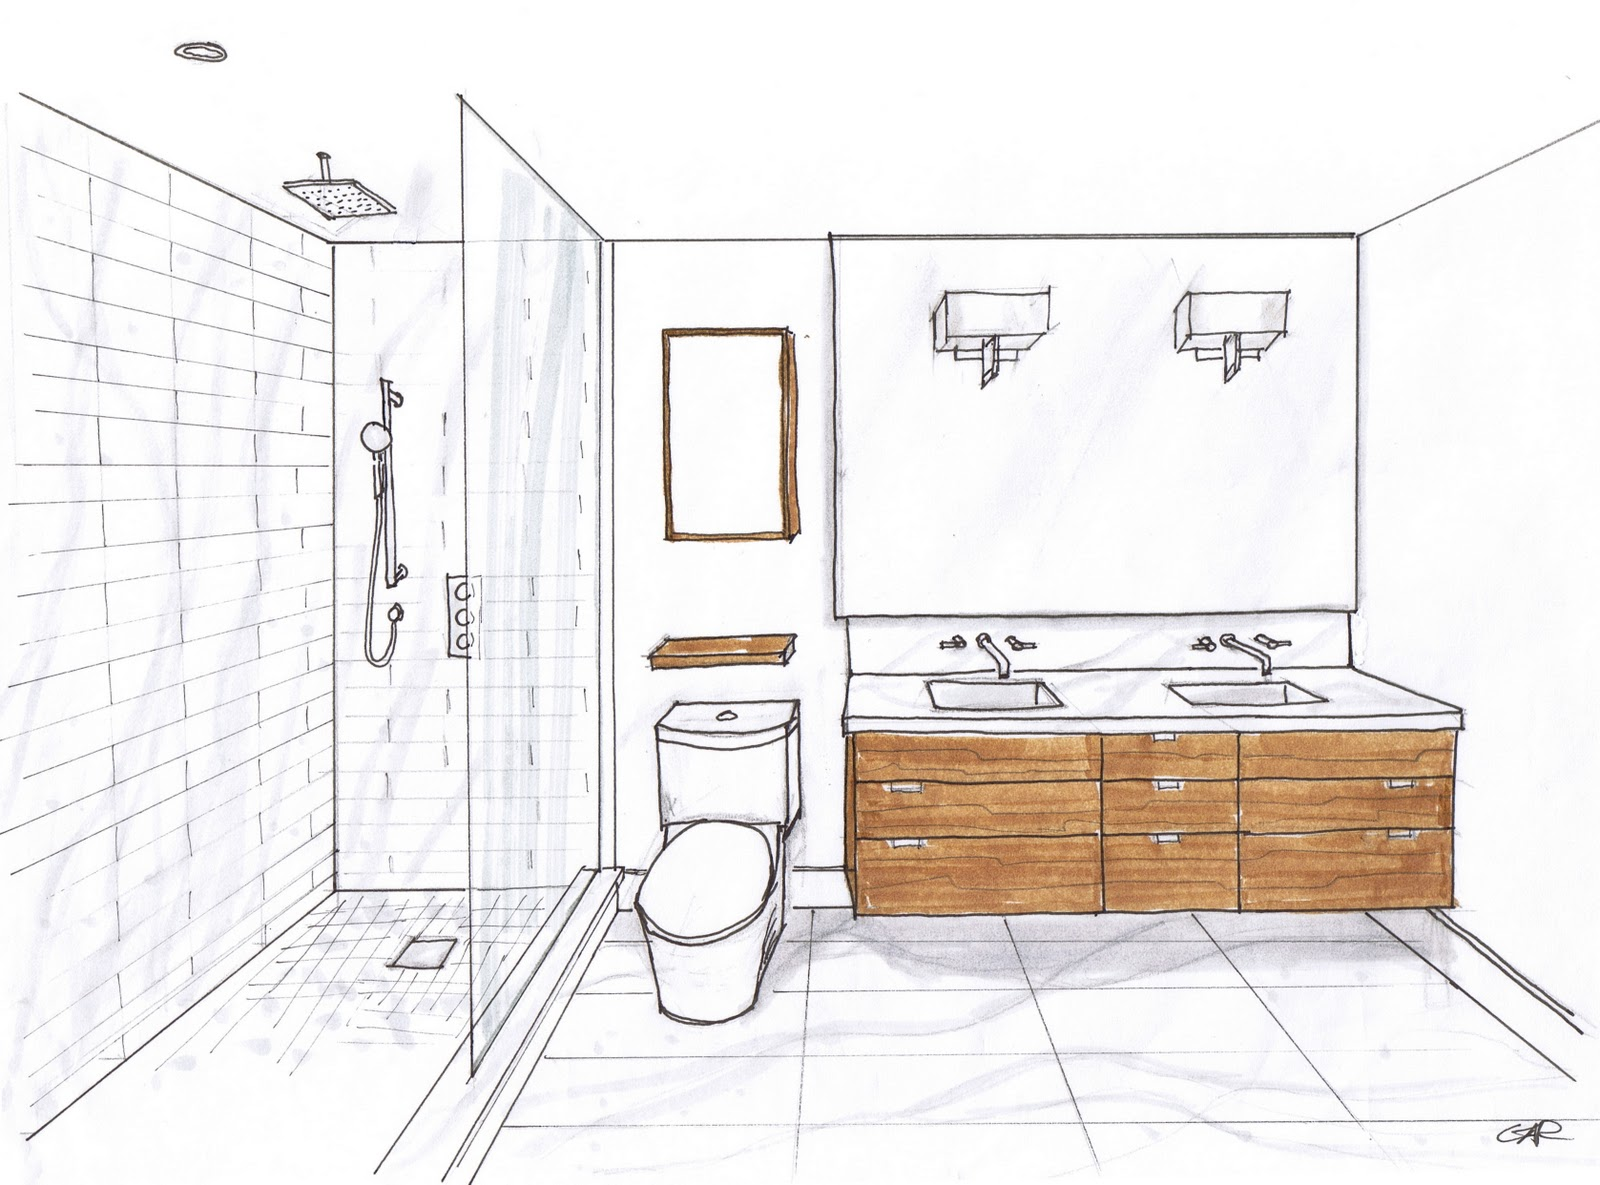 Creed 70 39 s bungalow bathroom designs for Best small bathroom layout